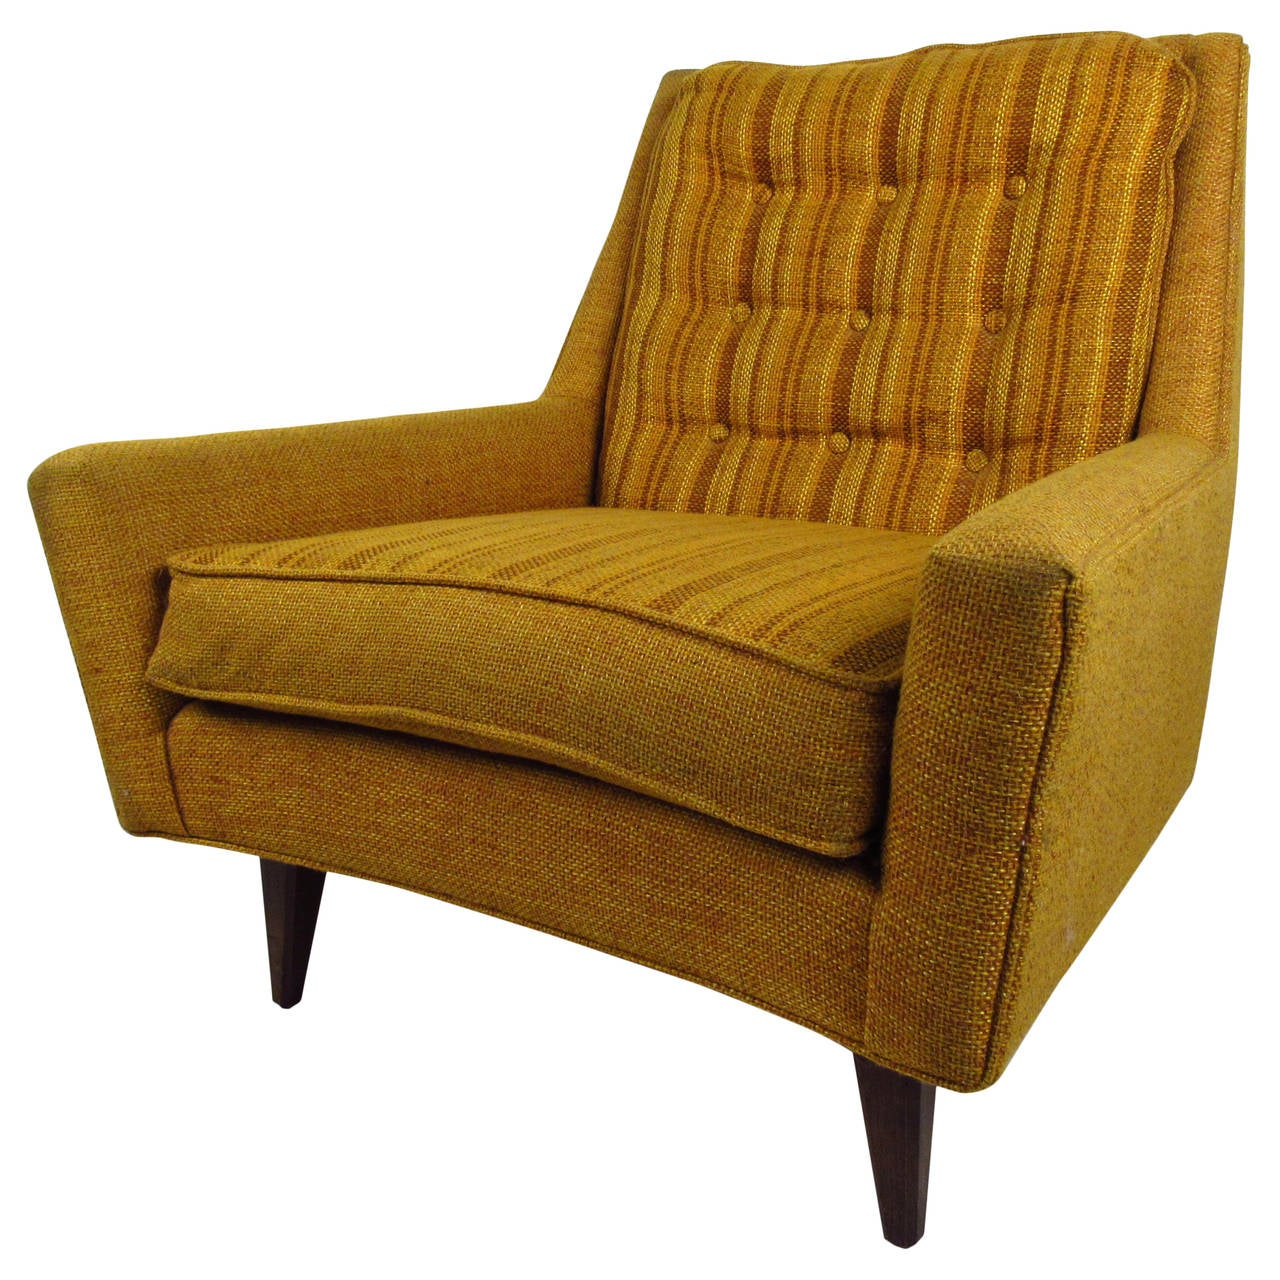 Midcentury Chairs Mid Century Modern Upholstered Lounge Chair With Tufted